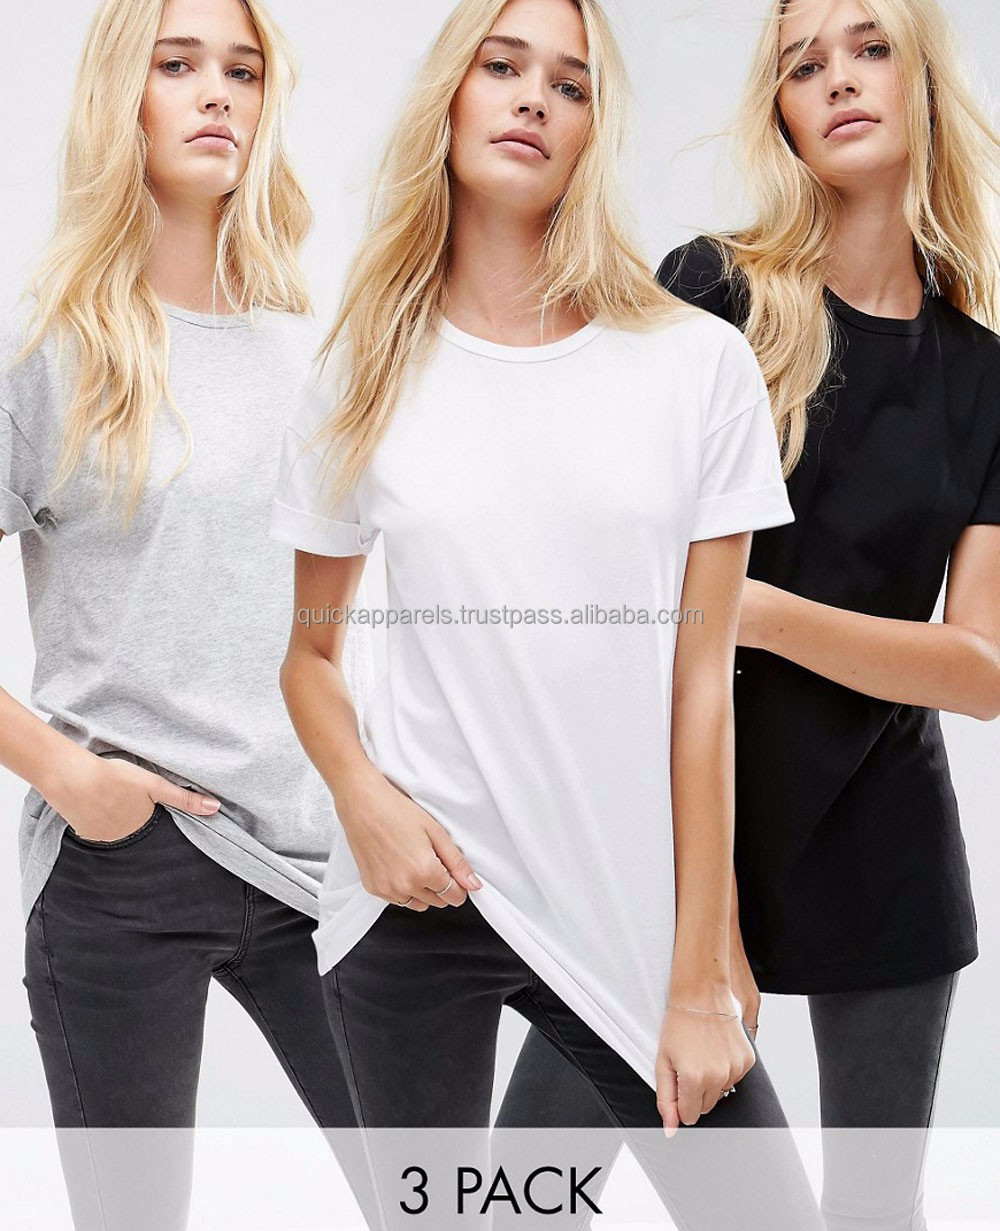 Wholesale stock lot basic plain women fitted blank color collar design t-shirts